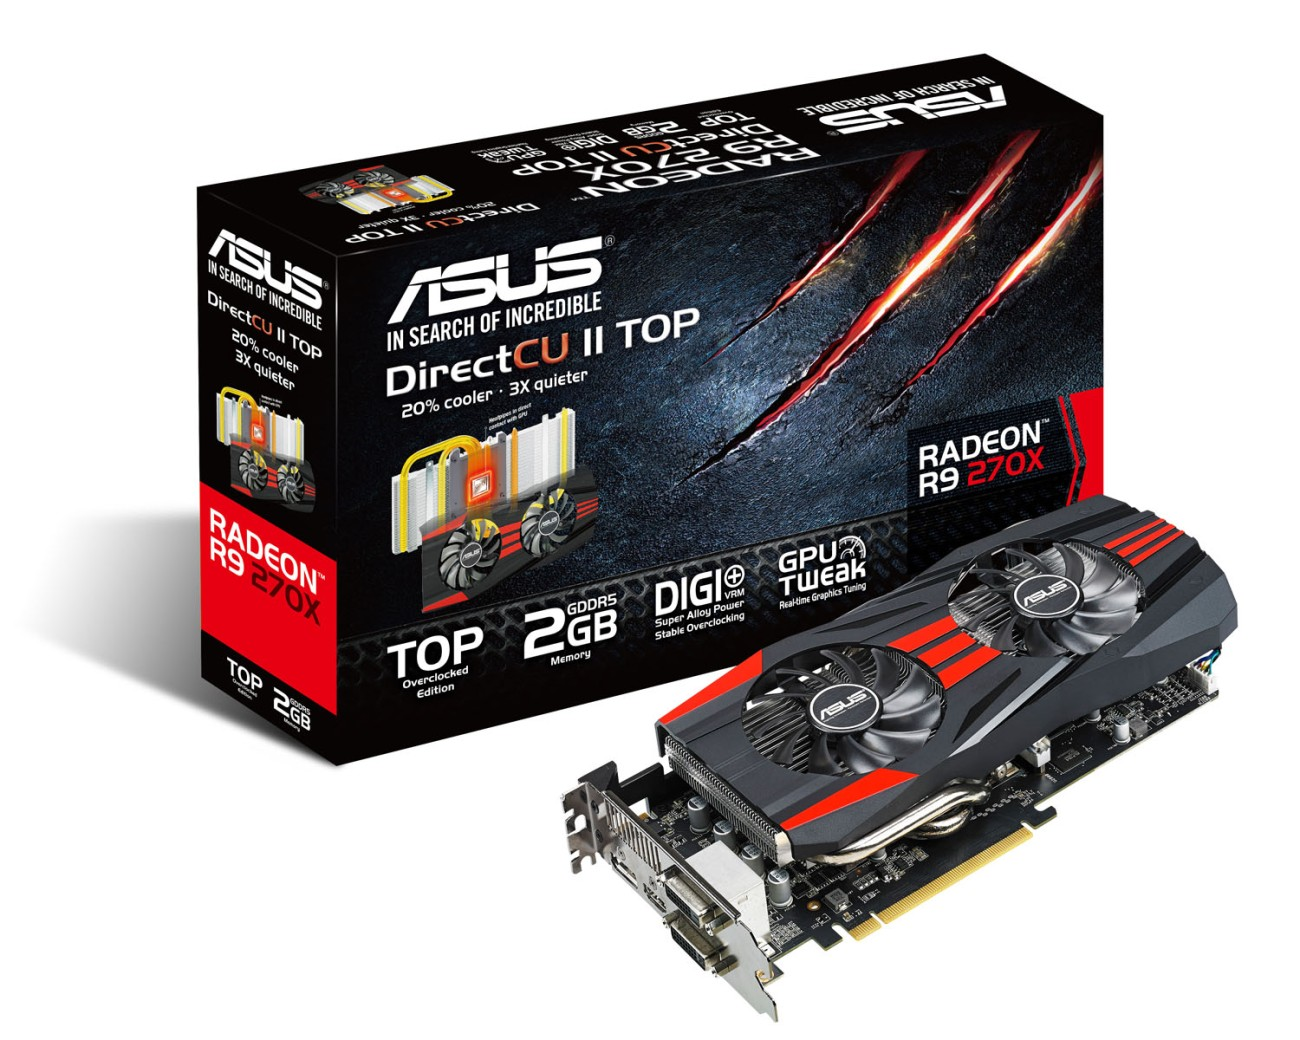 ASUS-Radeon-R9-270X-DirectCU-II-TOP-with-box